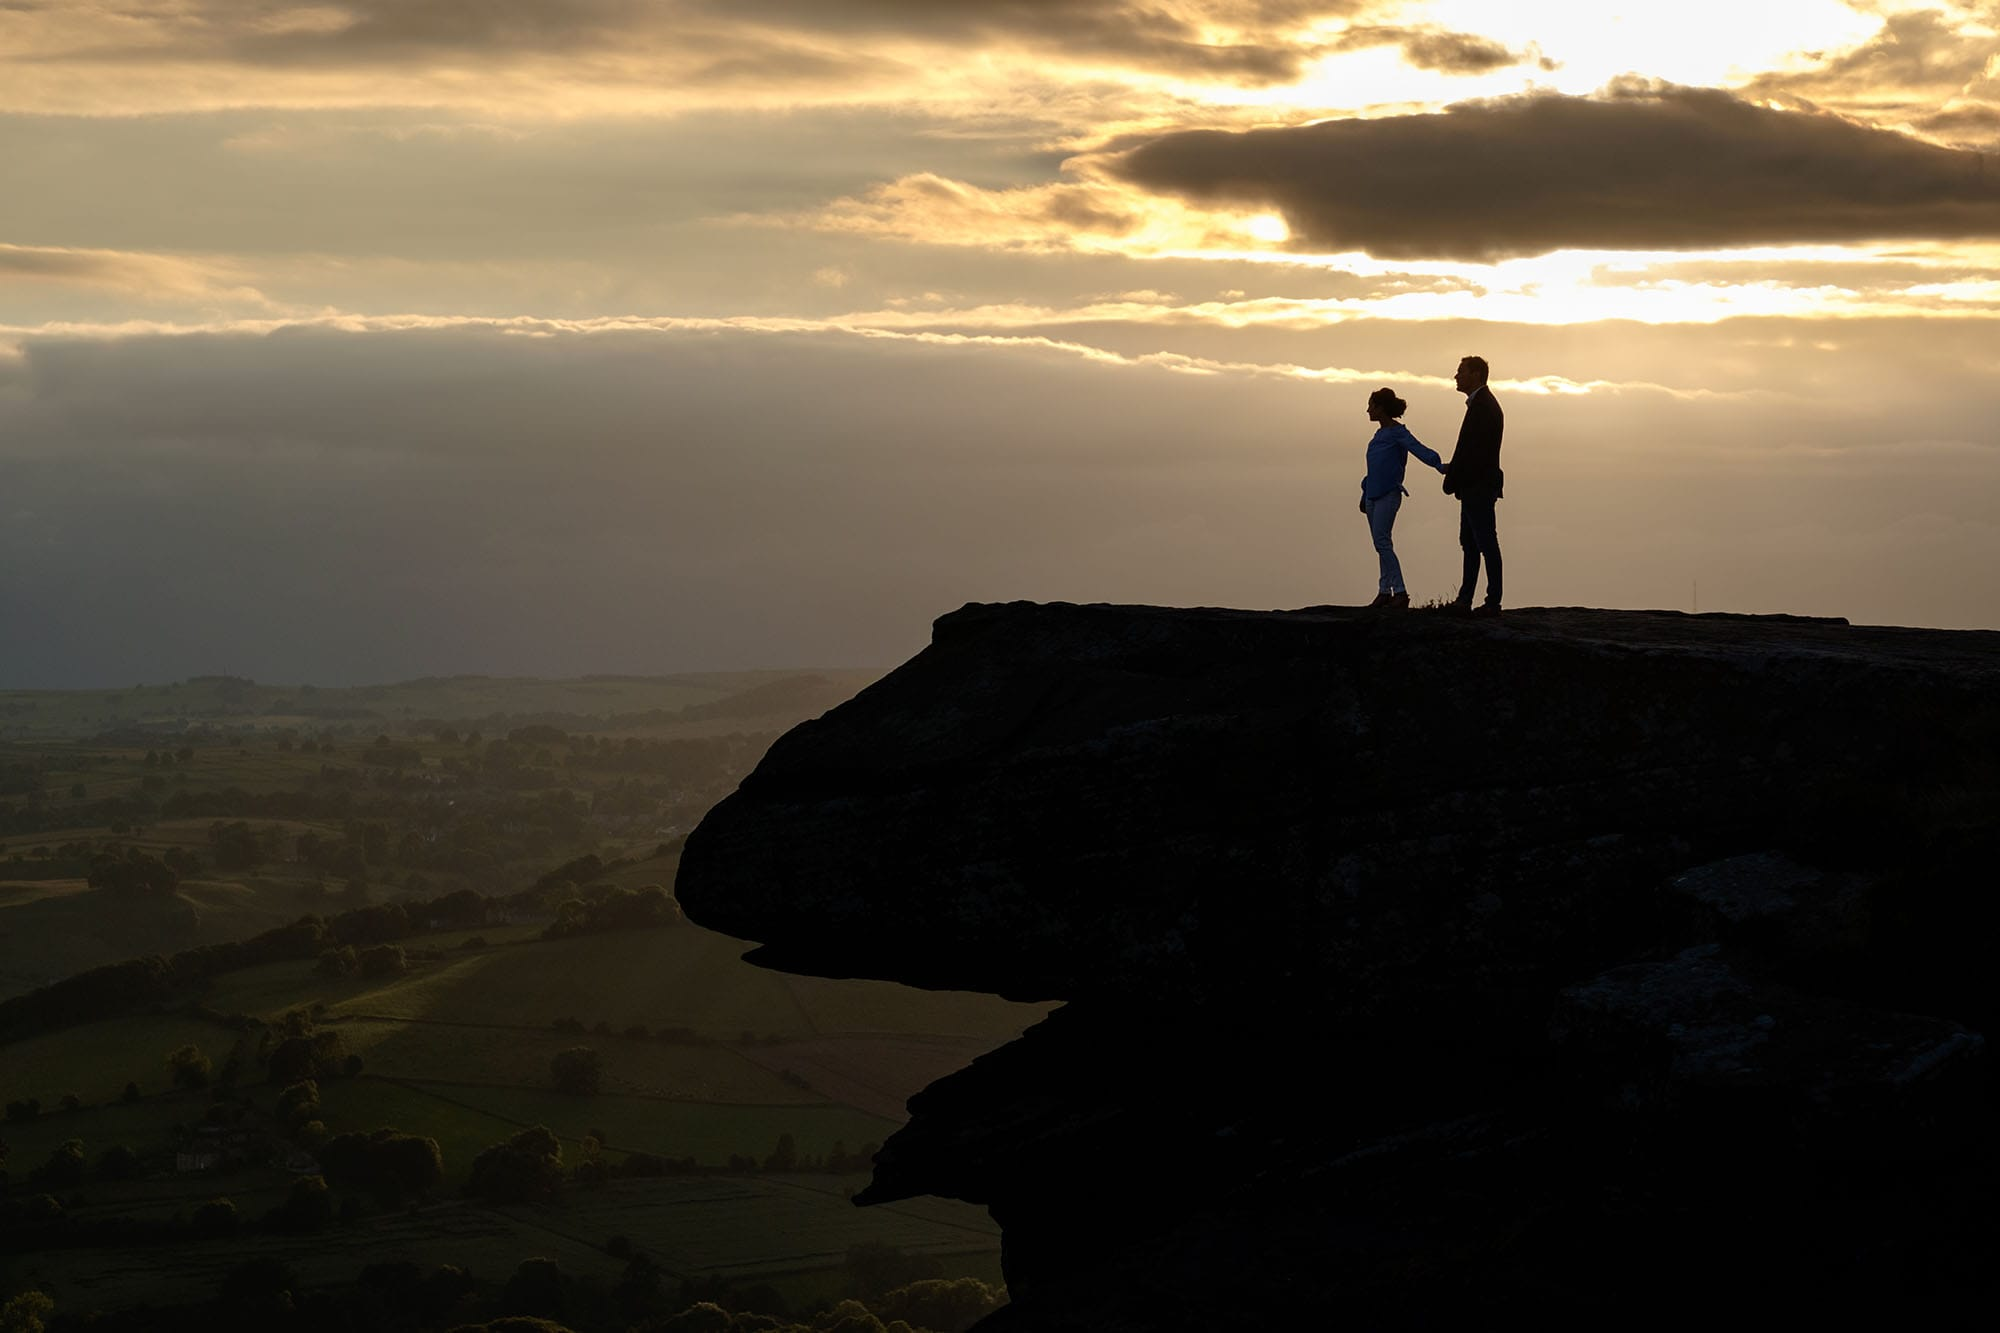 Peak District pre-wedding photography Christina and Toby edge